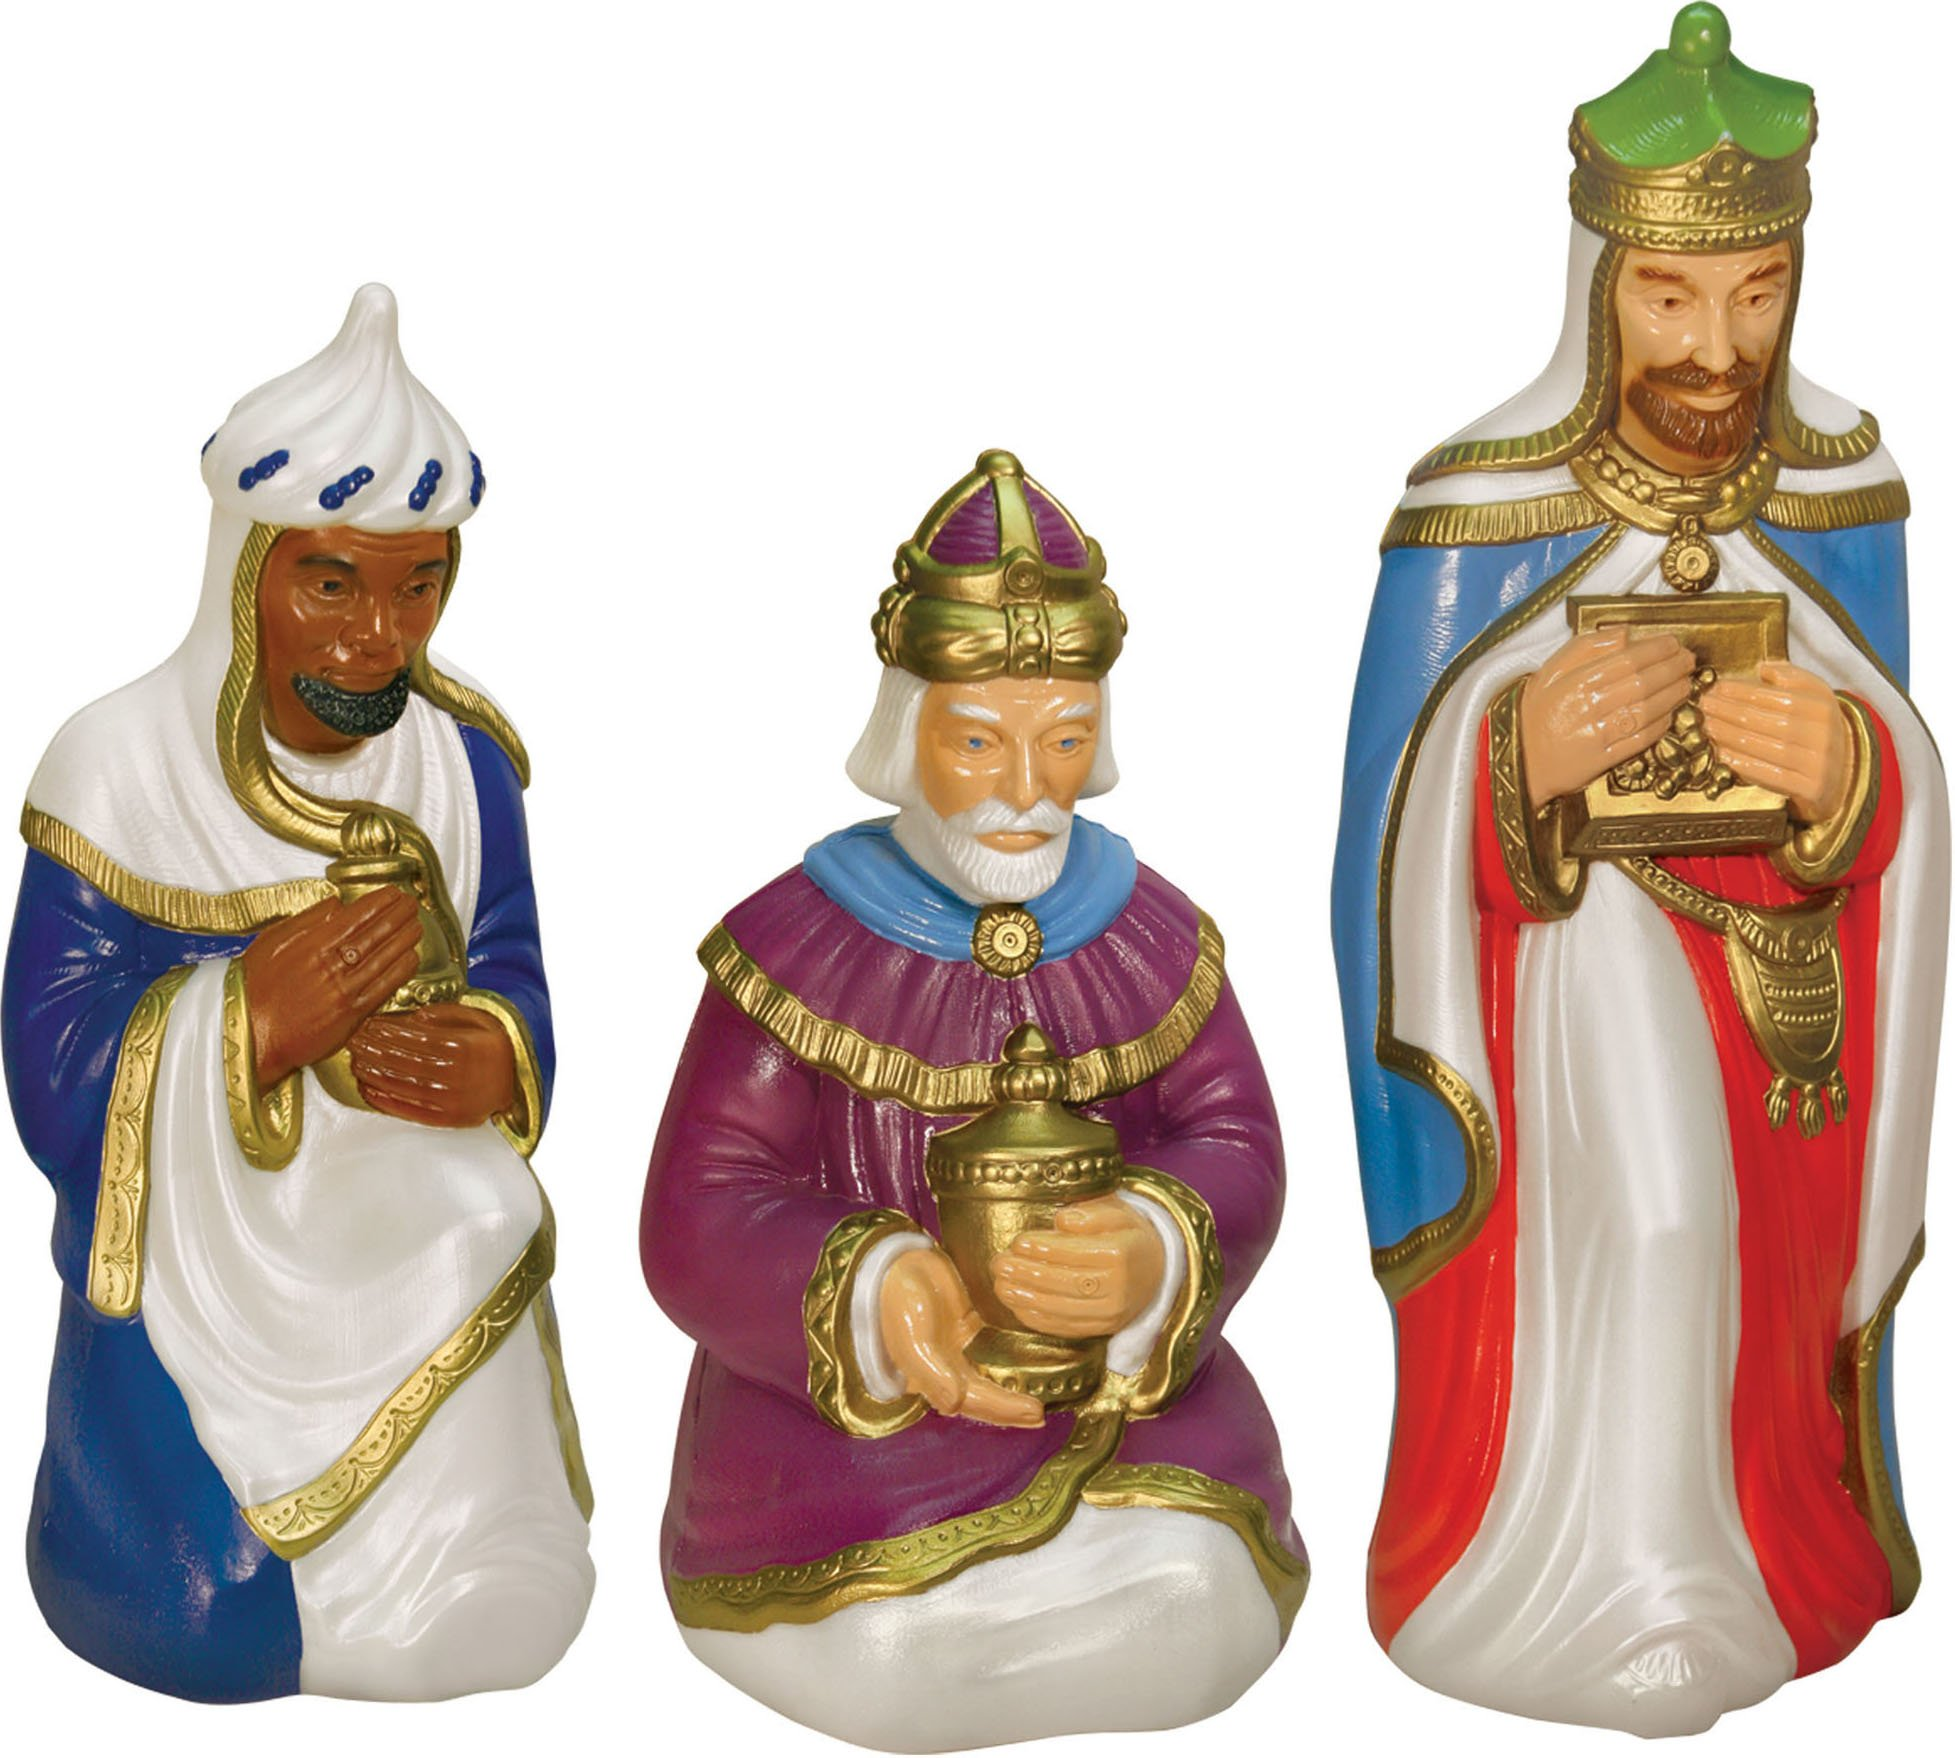 Nativity Scene Three Wiseman Set with Light by General Foam Plastics